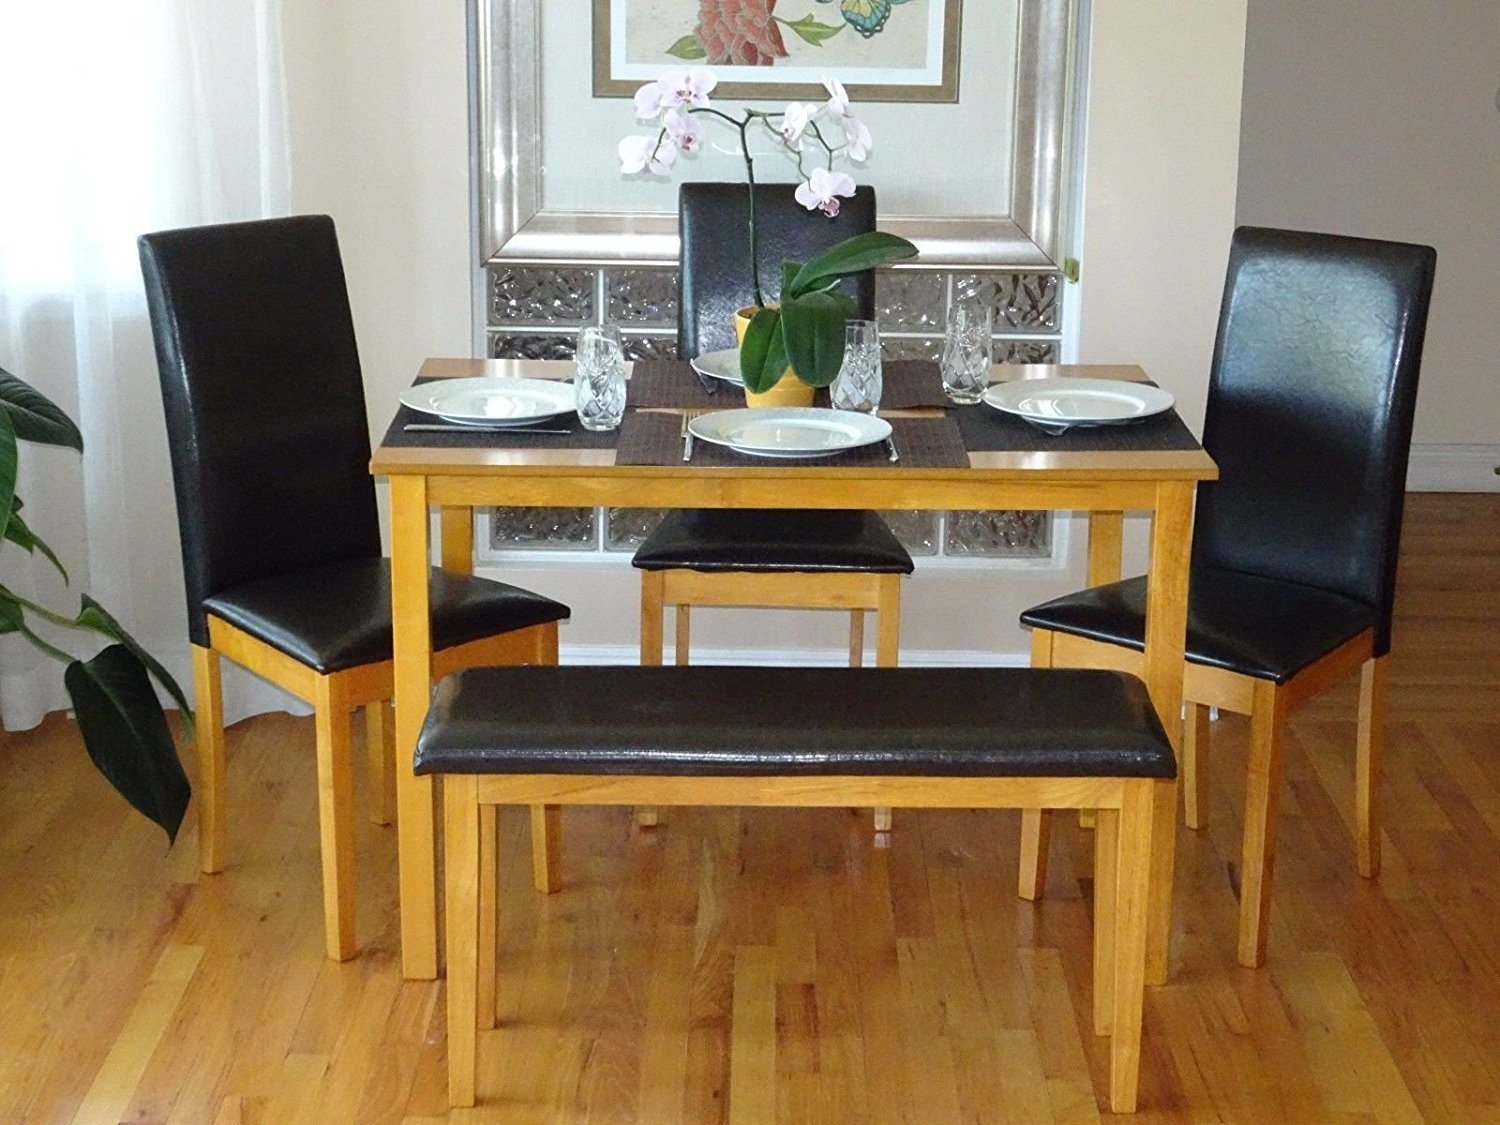 Rattan Wicker Furniture Dining Kitchen Solid Wooden Bench Stained Padded Seat Classic Design in Maple Finish by Rattan Wicker Furniture (Image #4)